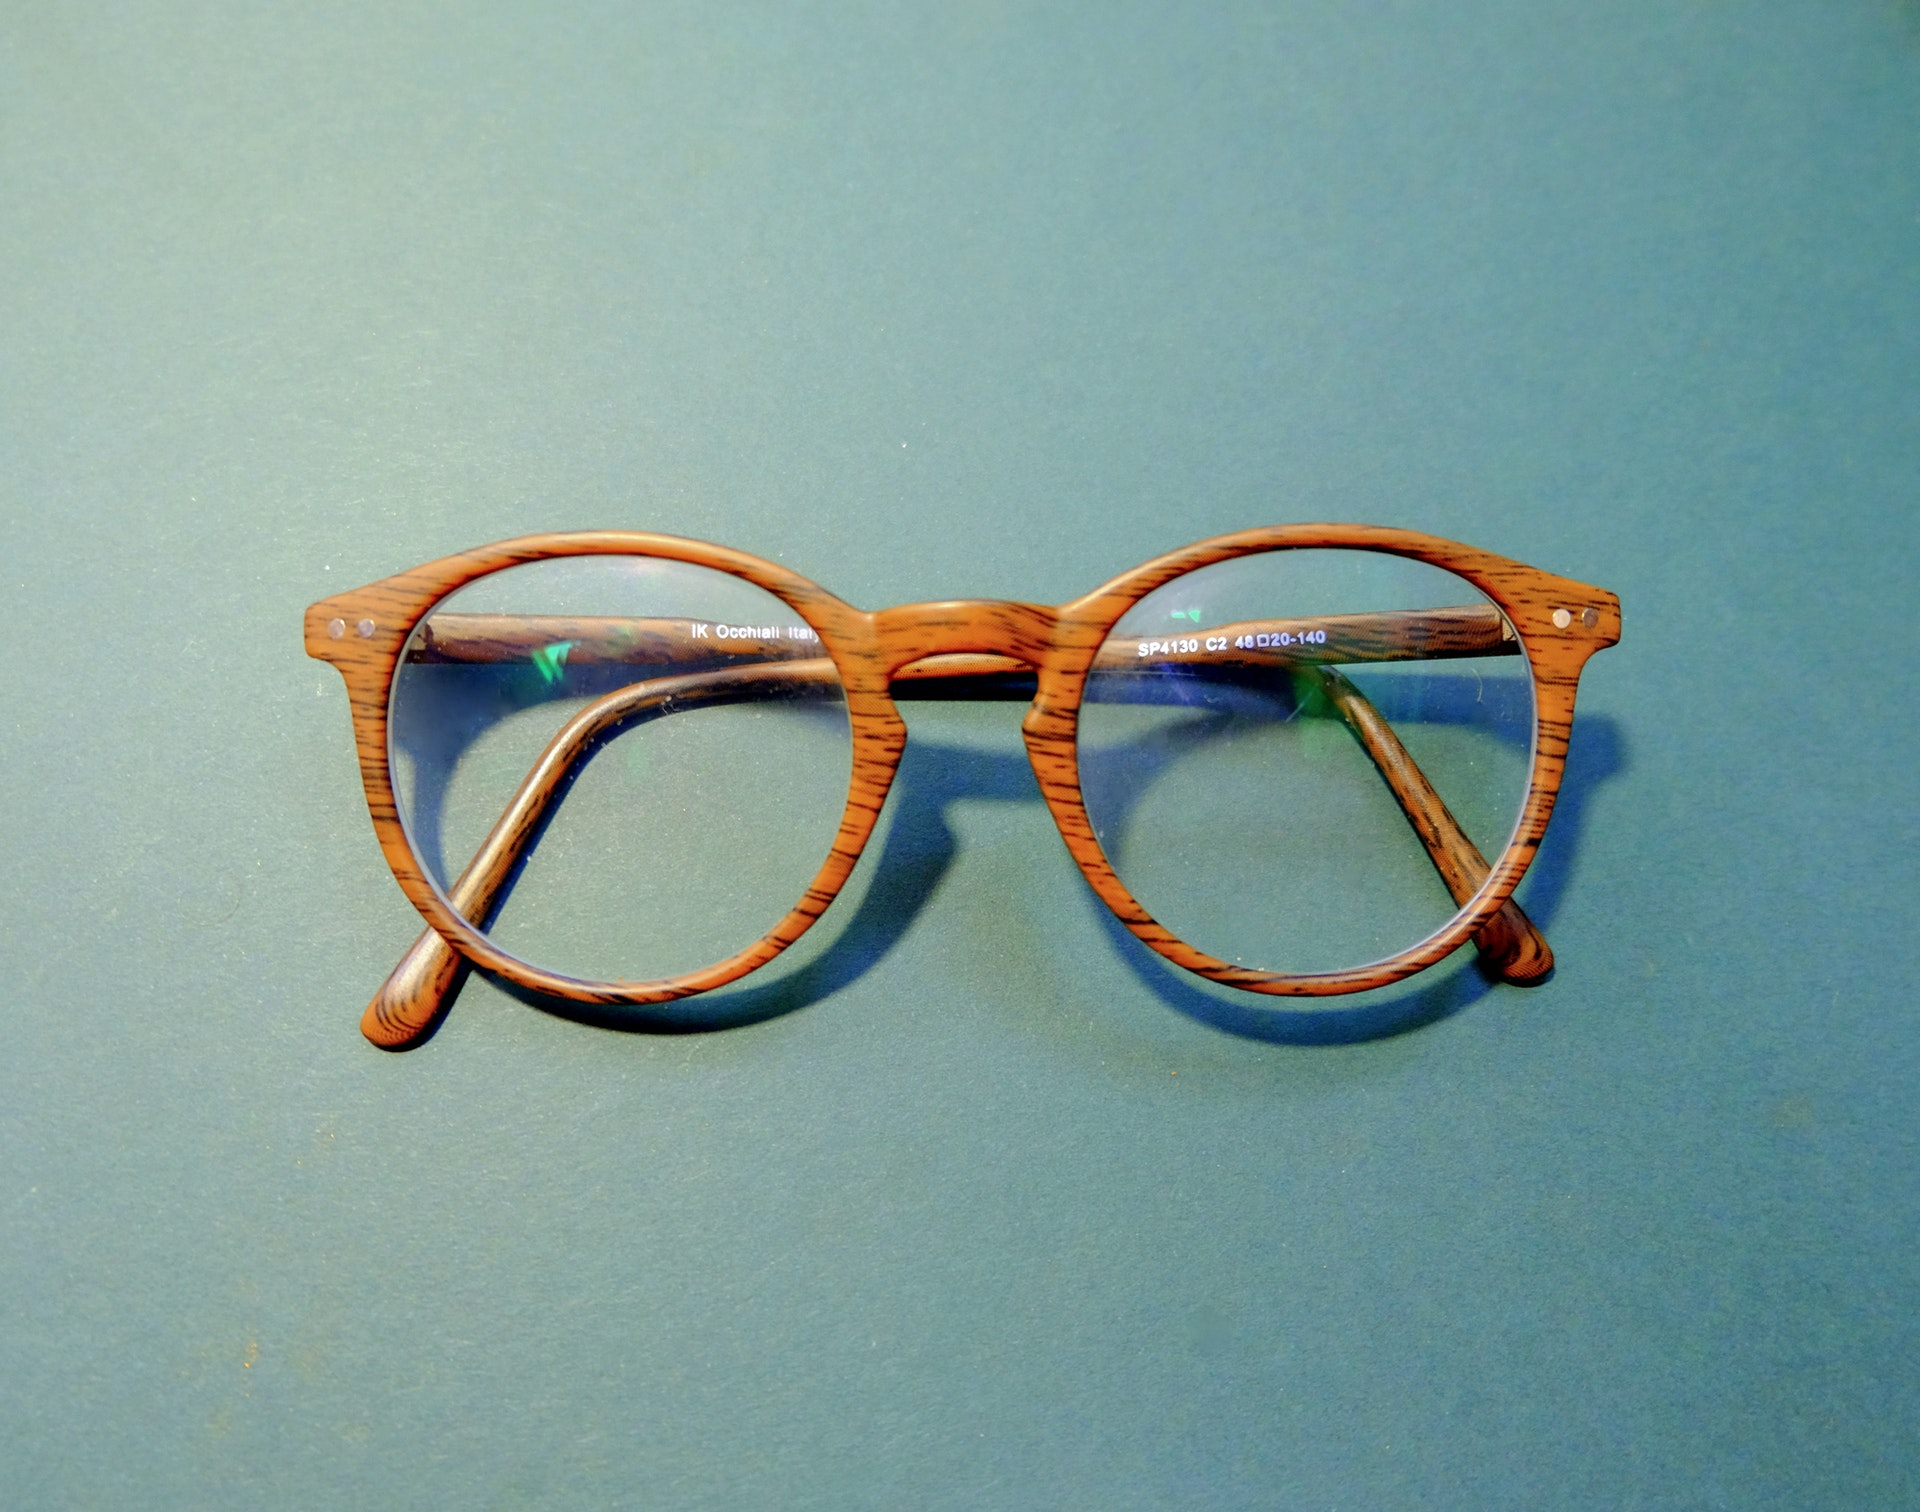 Top Tips for Finding the Right Eyeglasses